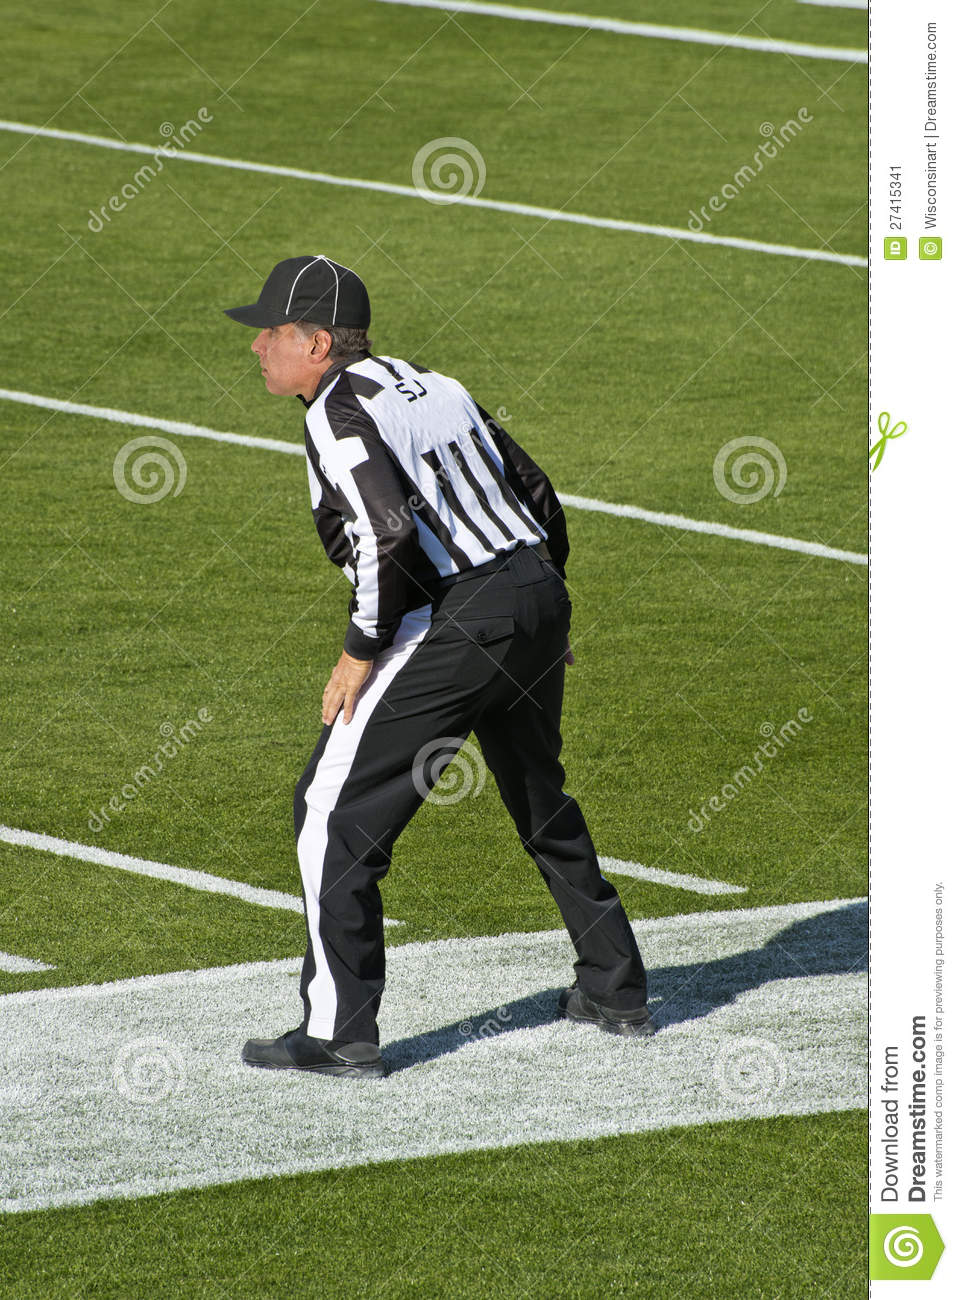 american nfl football referee stock image